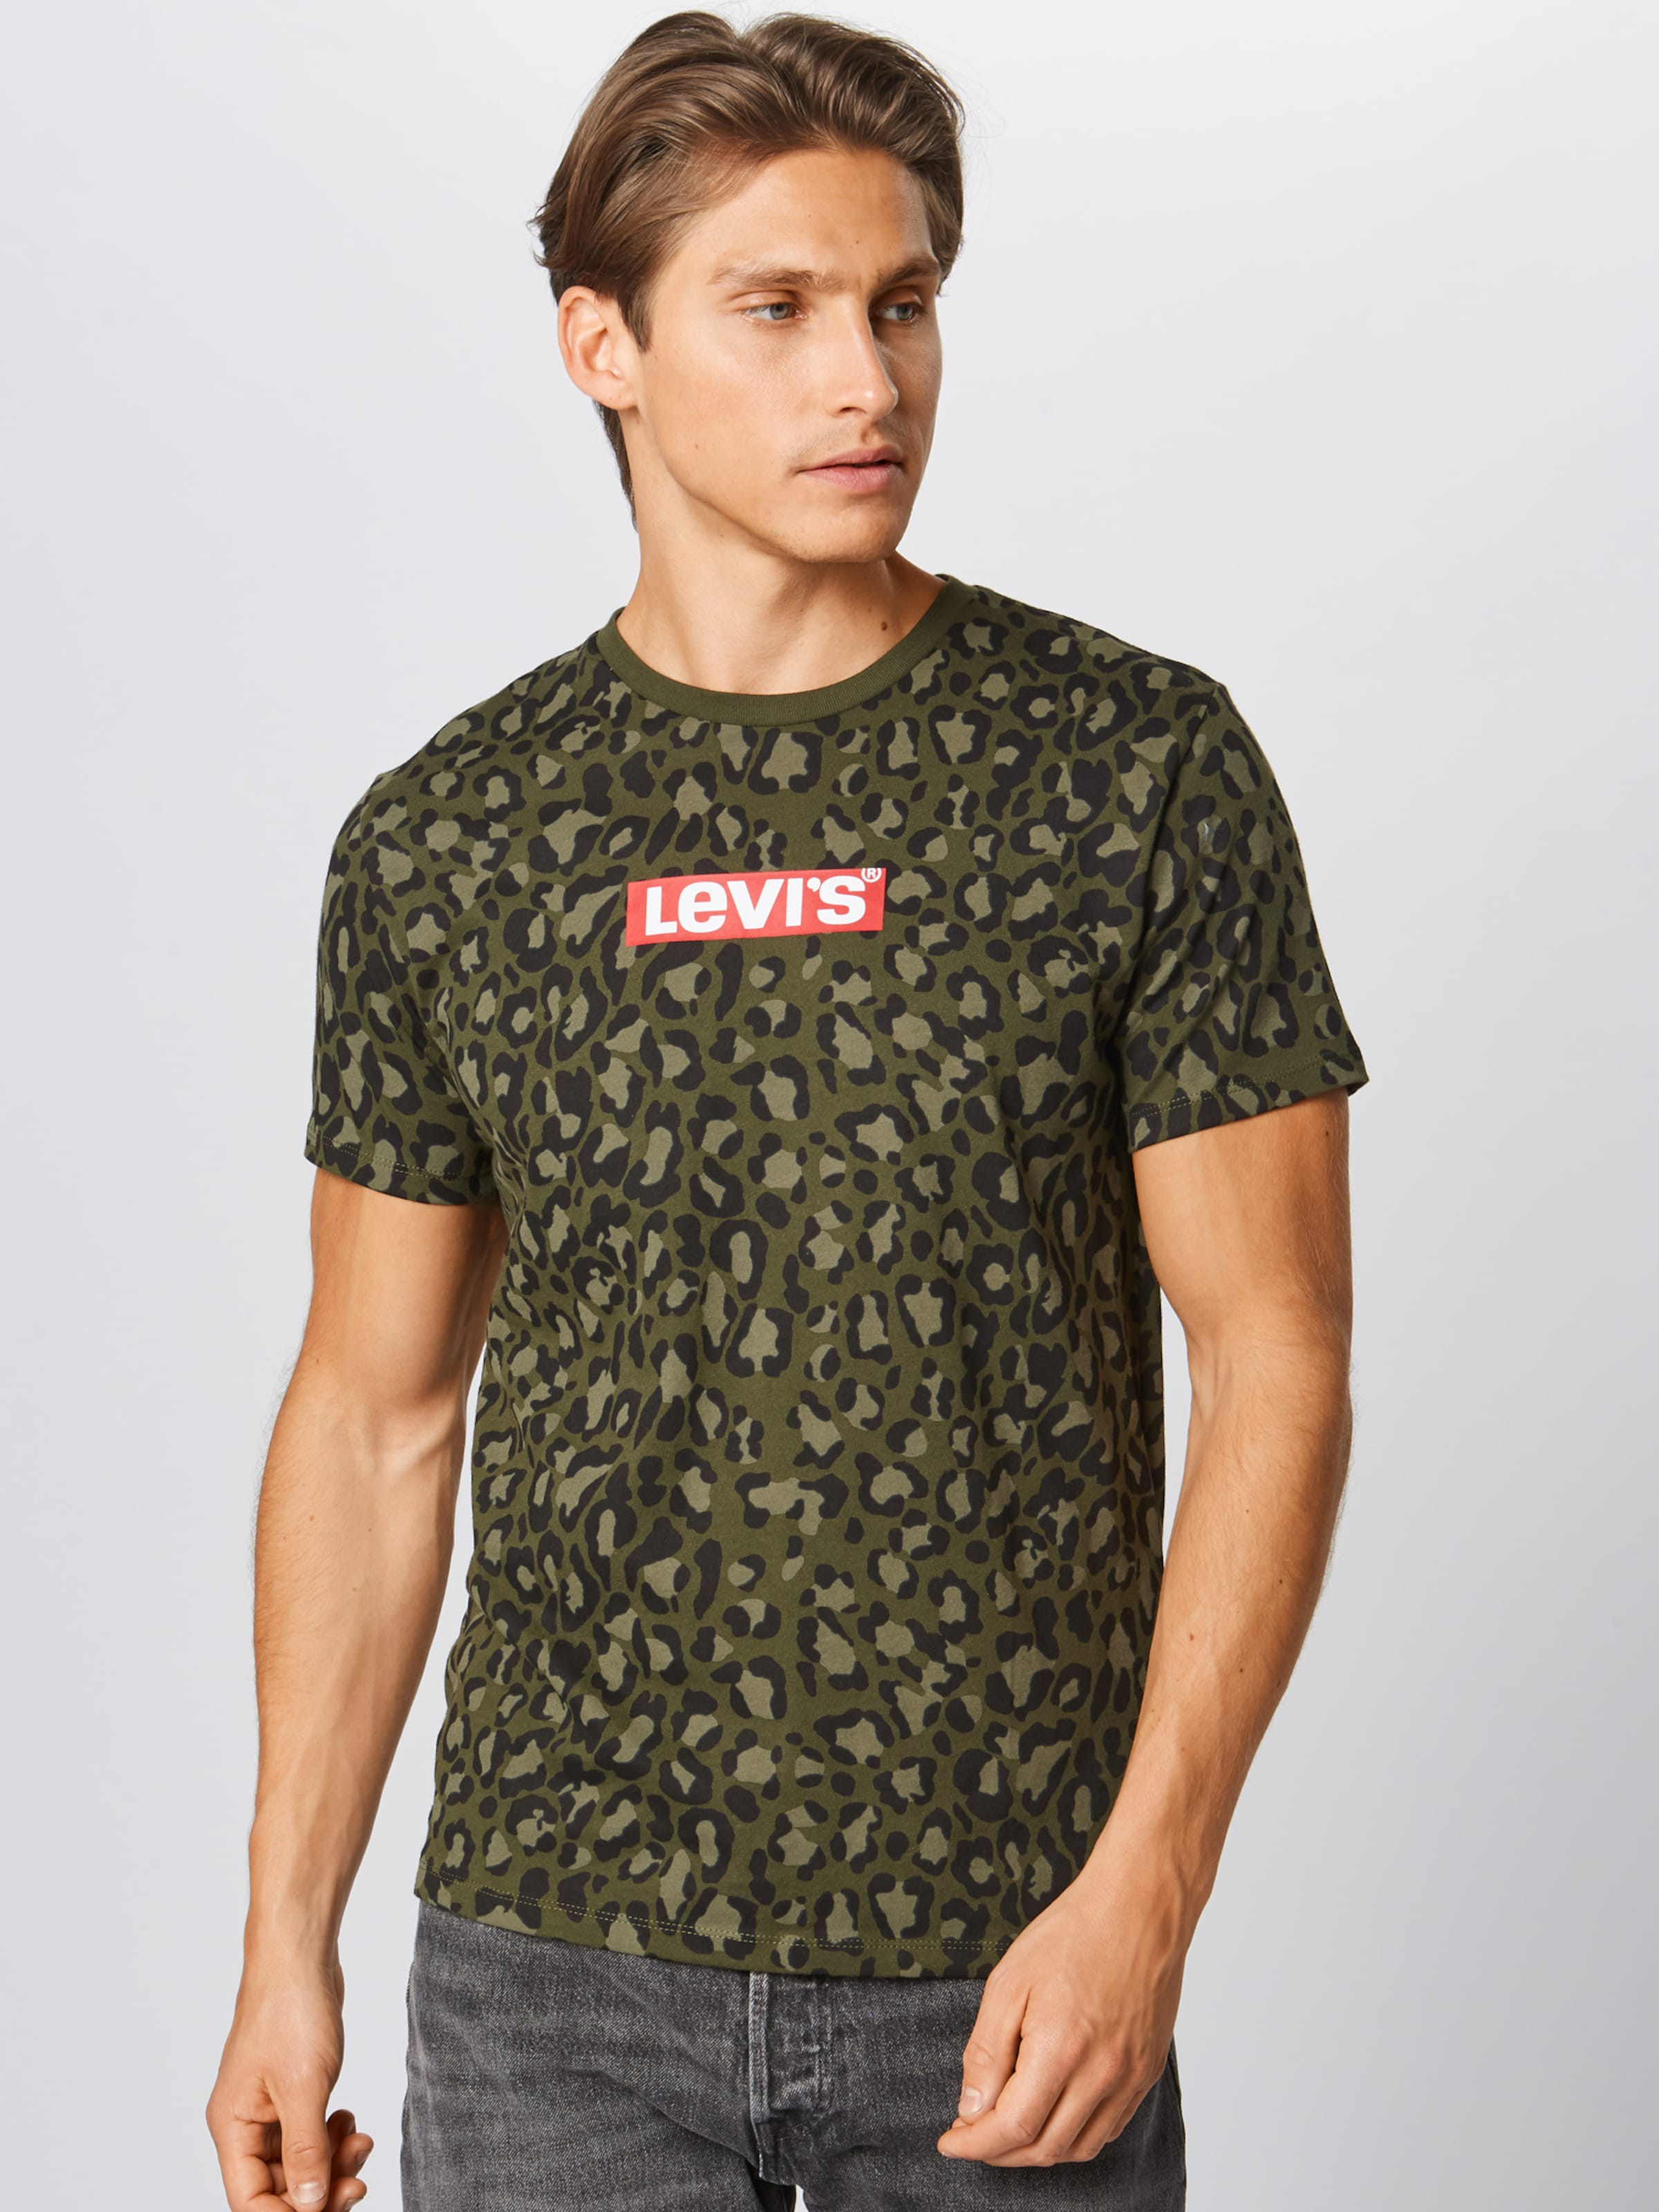 Set 2' Levi's 'graphic In shirt Neck in T BraunDunkelgrün OZkiuPXT